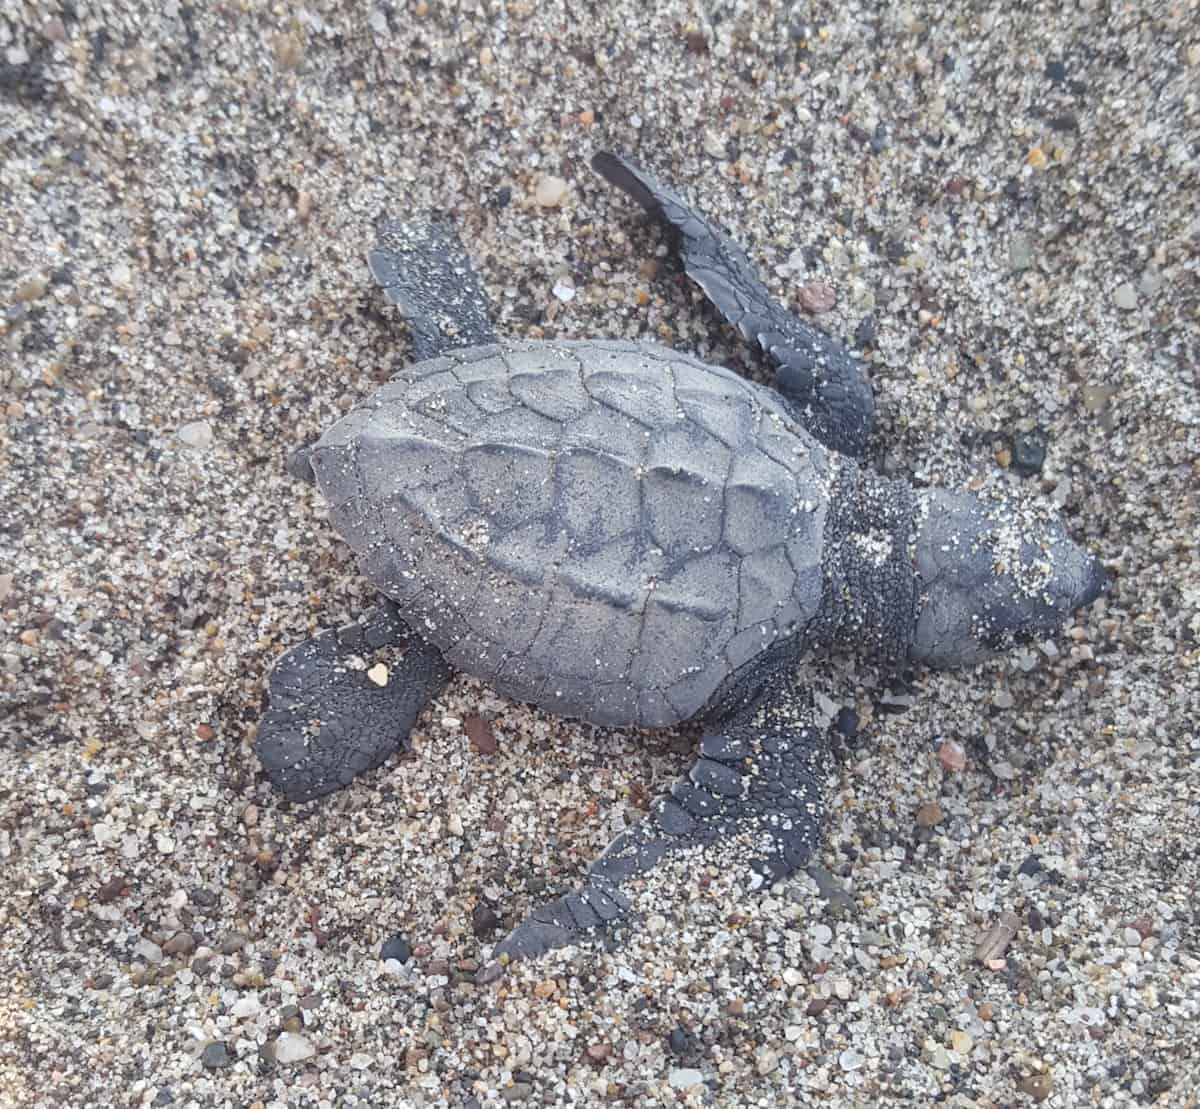 Releasing Sea Turtles: What You Should Know